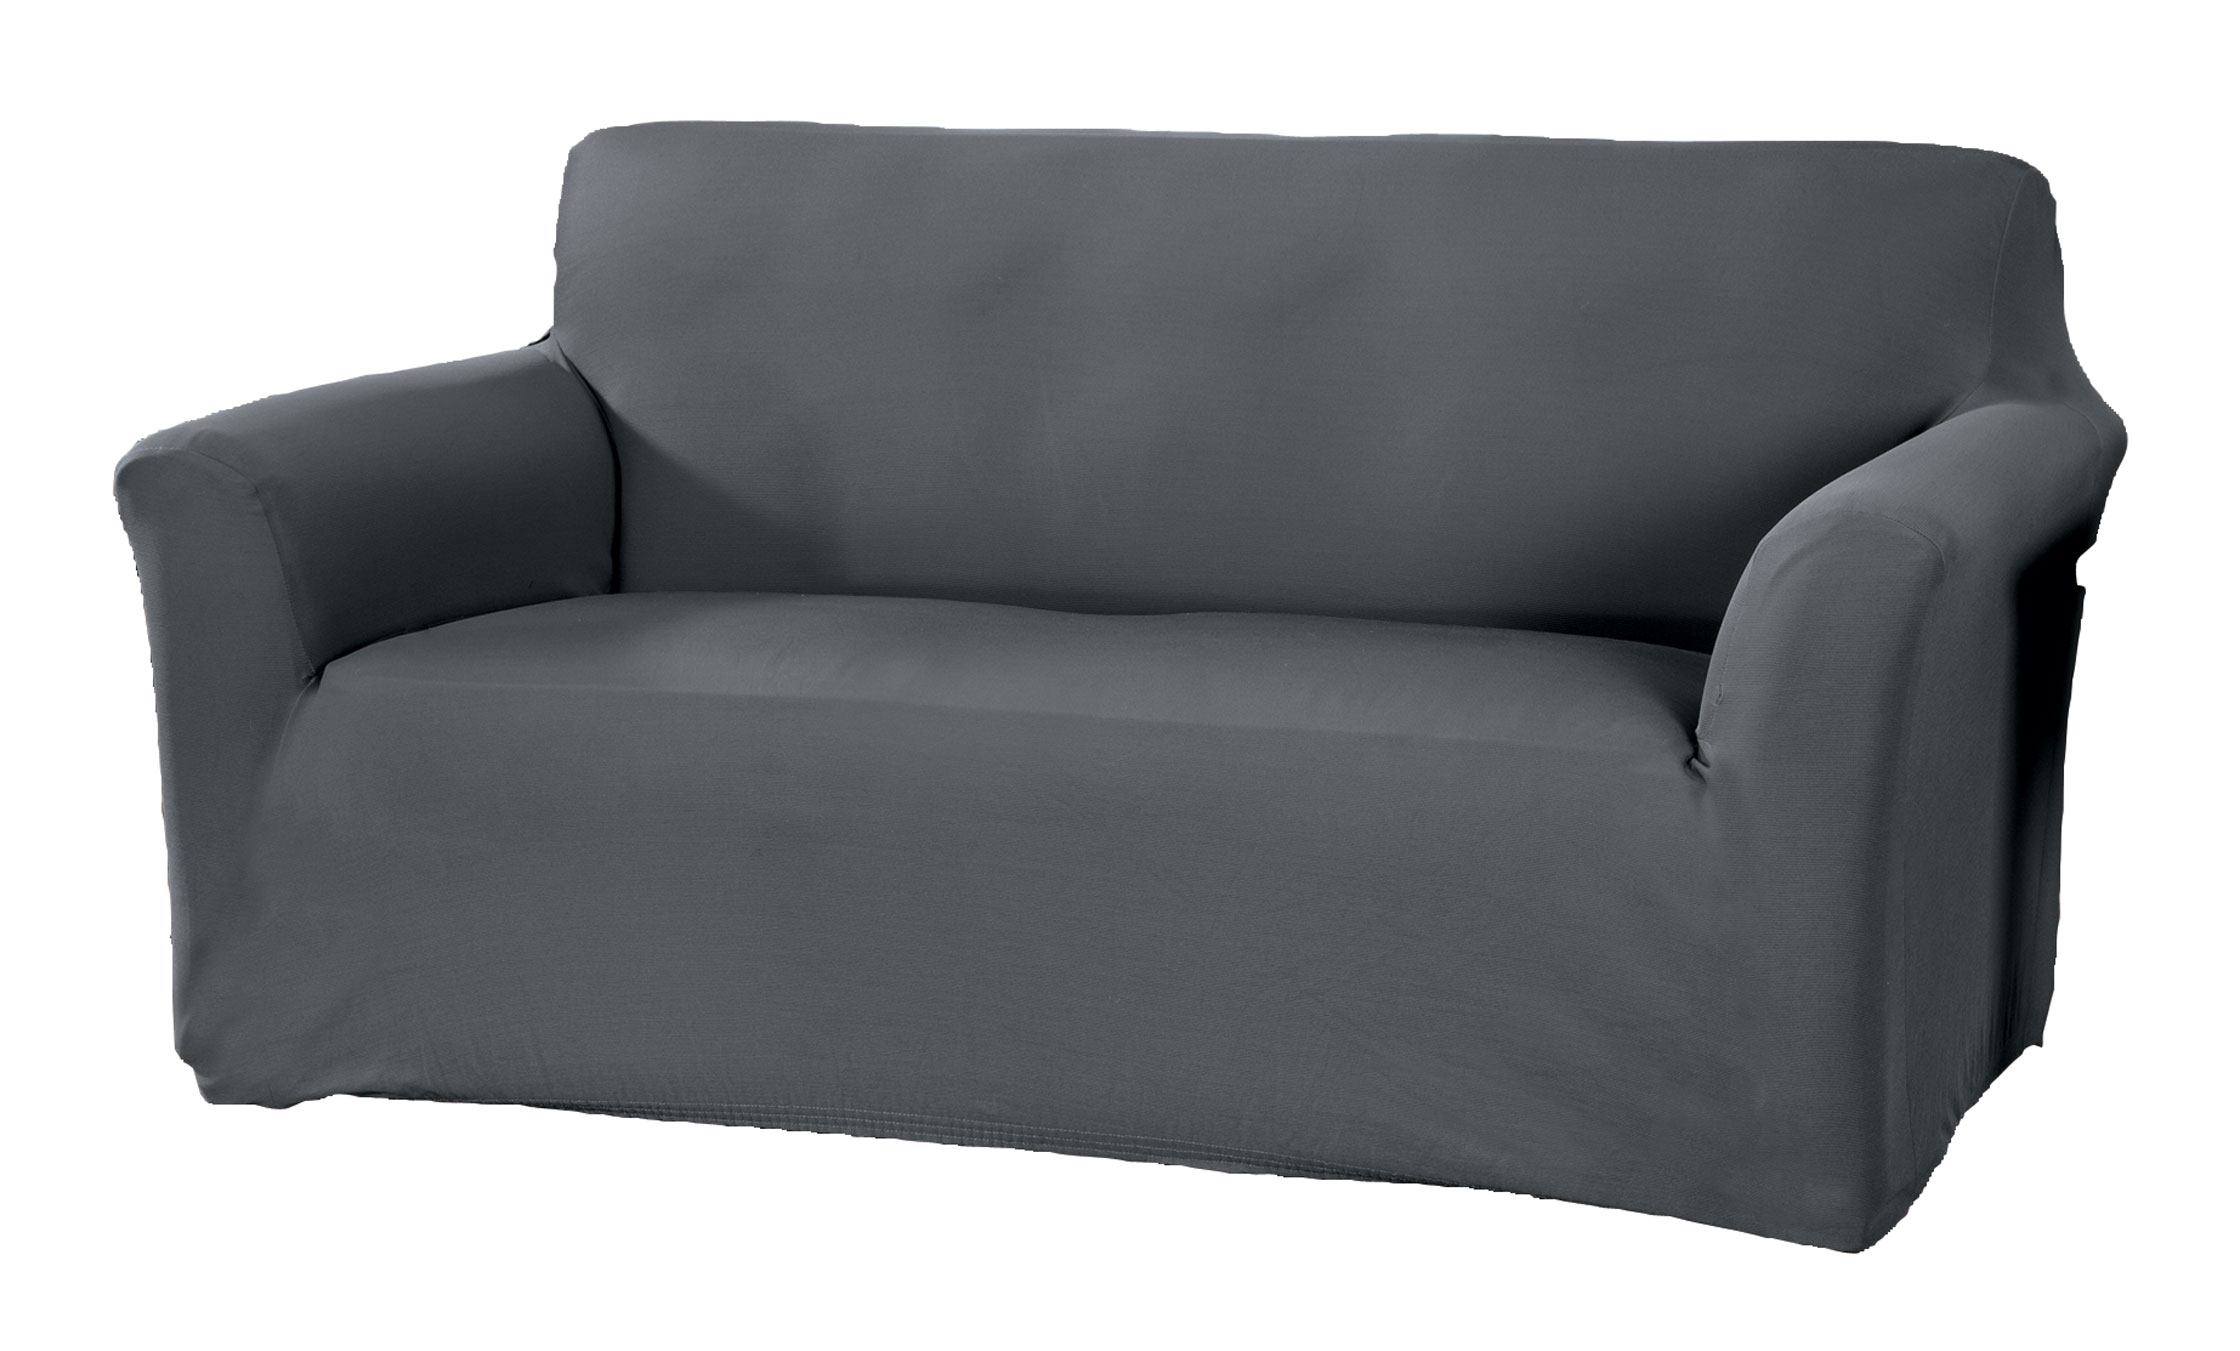 Corduroy Sofa Stretch Furniture Cover Corduroy sofa stretch furniture cover gives sofas an instant lift with the rich look and feel of corduroy. One-piece furniture protector adds soft, breathable comfort to your sofa while protecting against spills, stains and wear. Stretch design provides a smooth look that resists wrinkles and fits most sofas up to 90  W. Care is easy -- simply toss in the wash when it's time to freshen. Choose from 4 colors to complement any decor: burgundy, chocolate, ivory or gray. Sofa cover made with 97% polyester/3% spandex. Machine wash cold, gentle; tumble dry low. Use only non-chlorine bleach if needed. Do not iron. Imported.